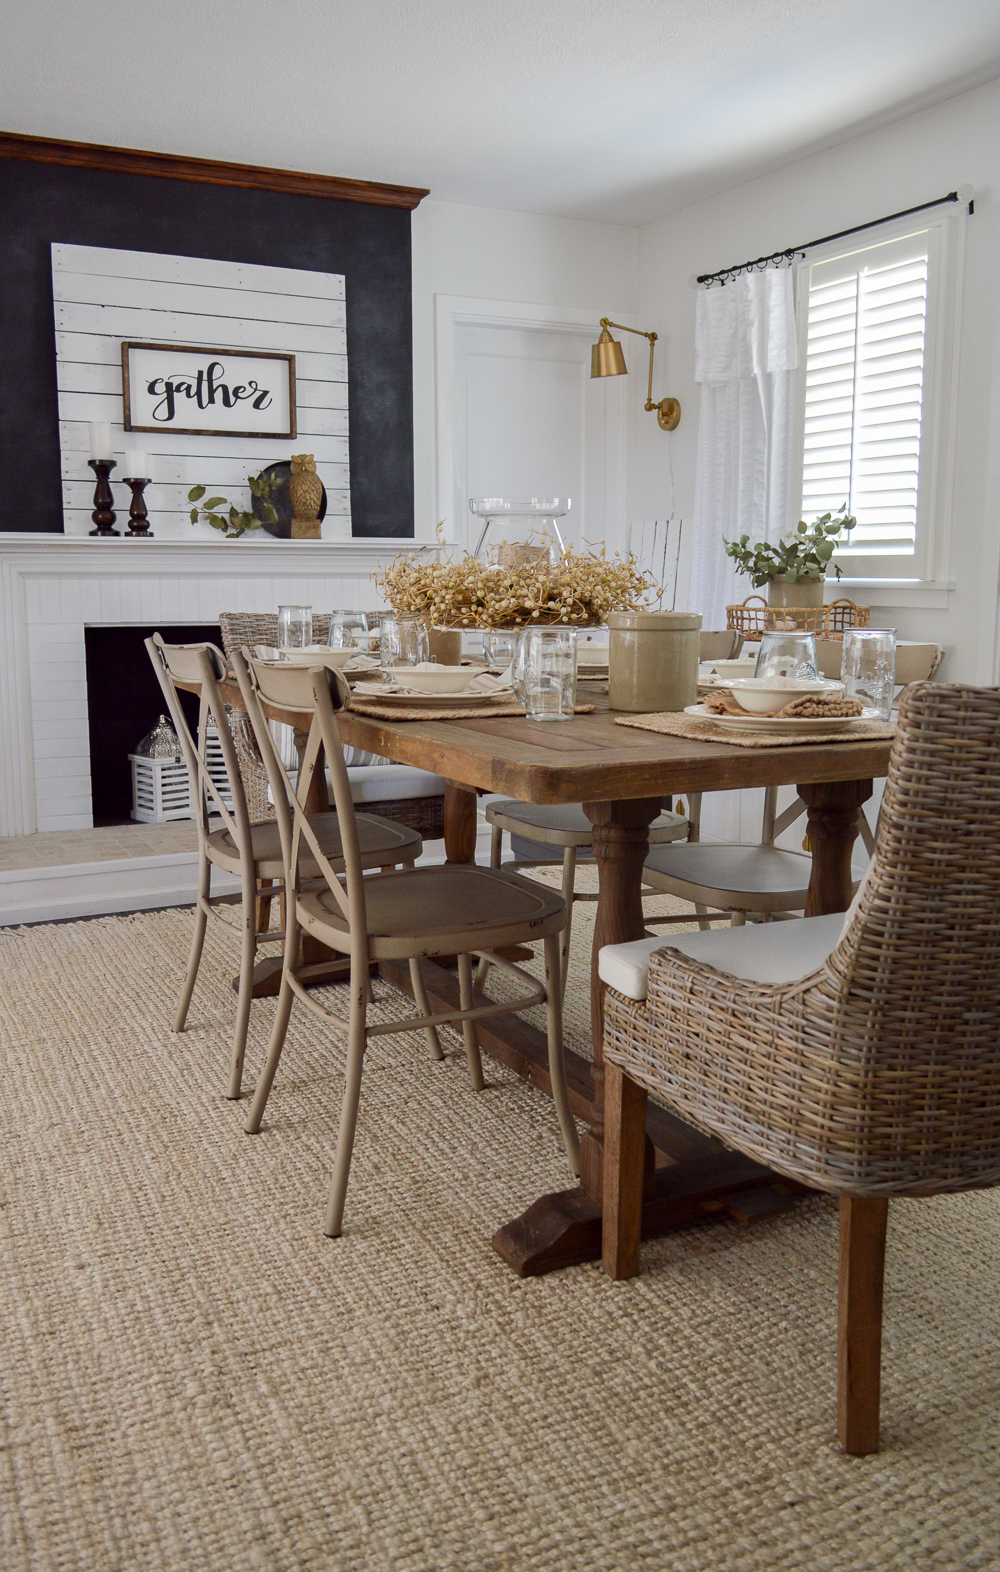 Easy Summer to Fall Dining Room Decorating Ideas - Farmhouse farm table and fireplace with 'gather' sign from Lolly Letters